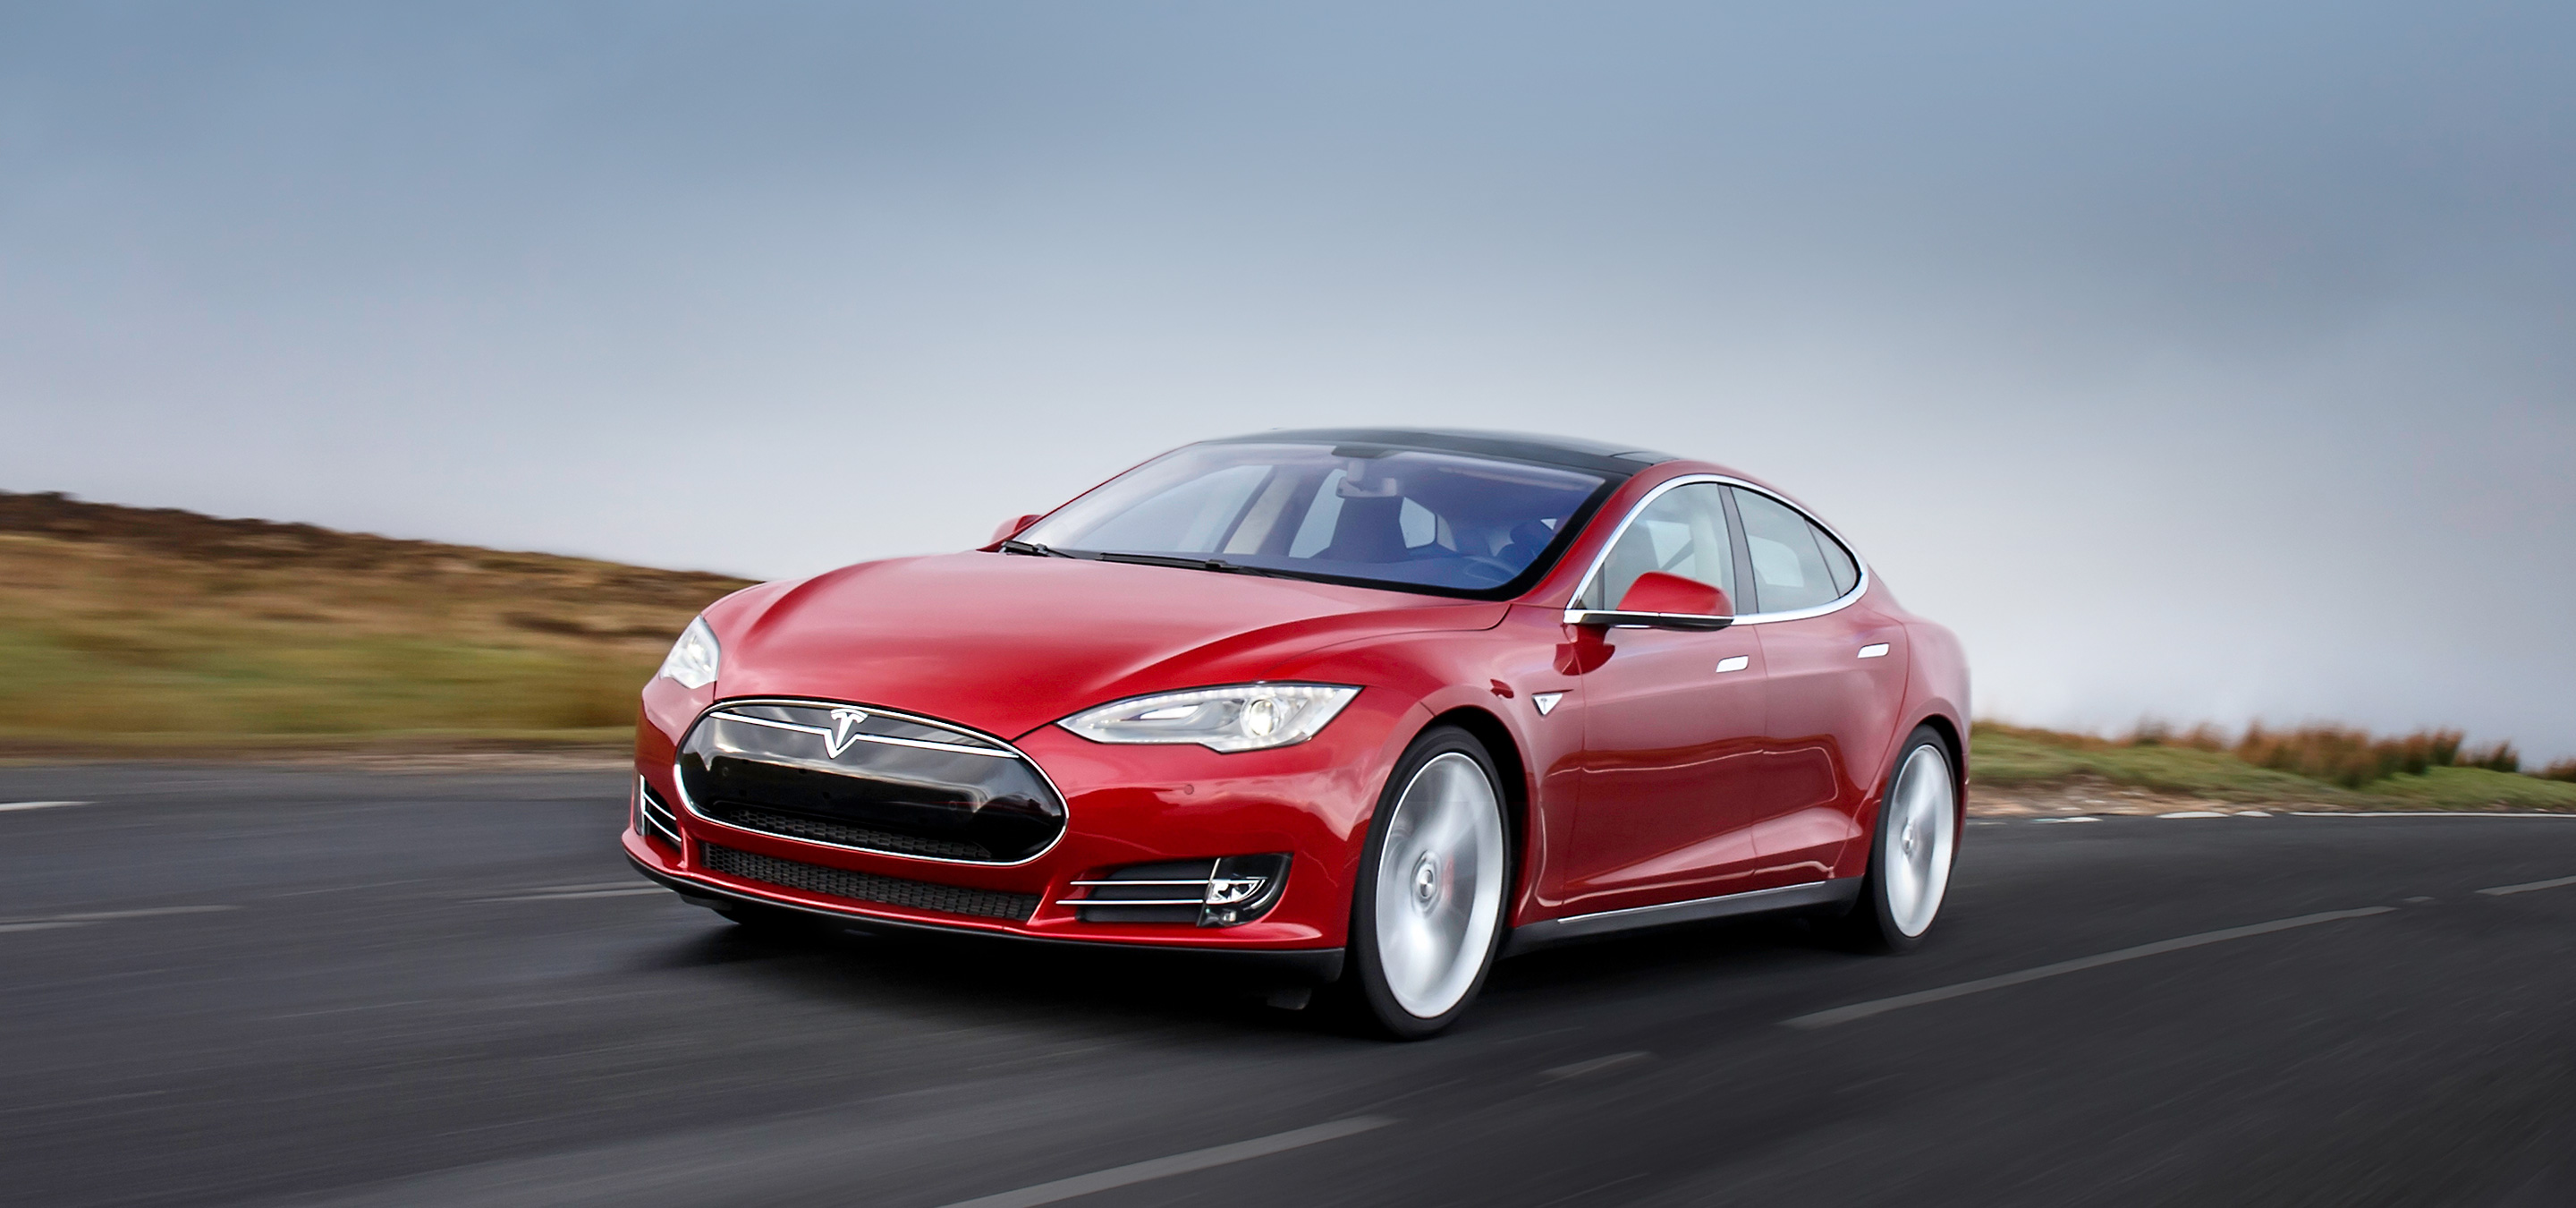 Tesla, Why buy a Tesla, benefits of buying a Tesla, advice on cars, sell your car